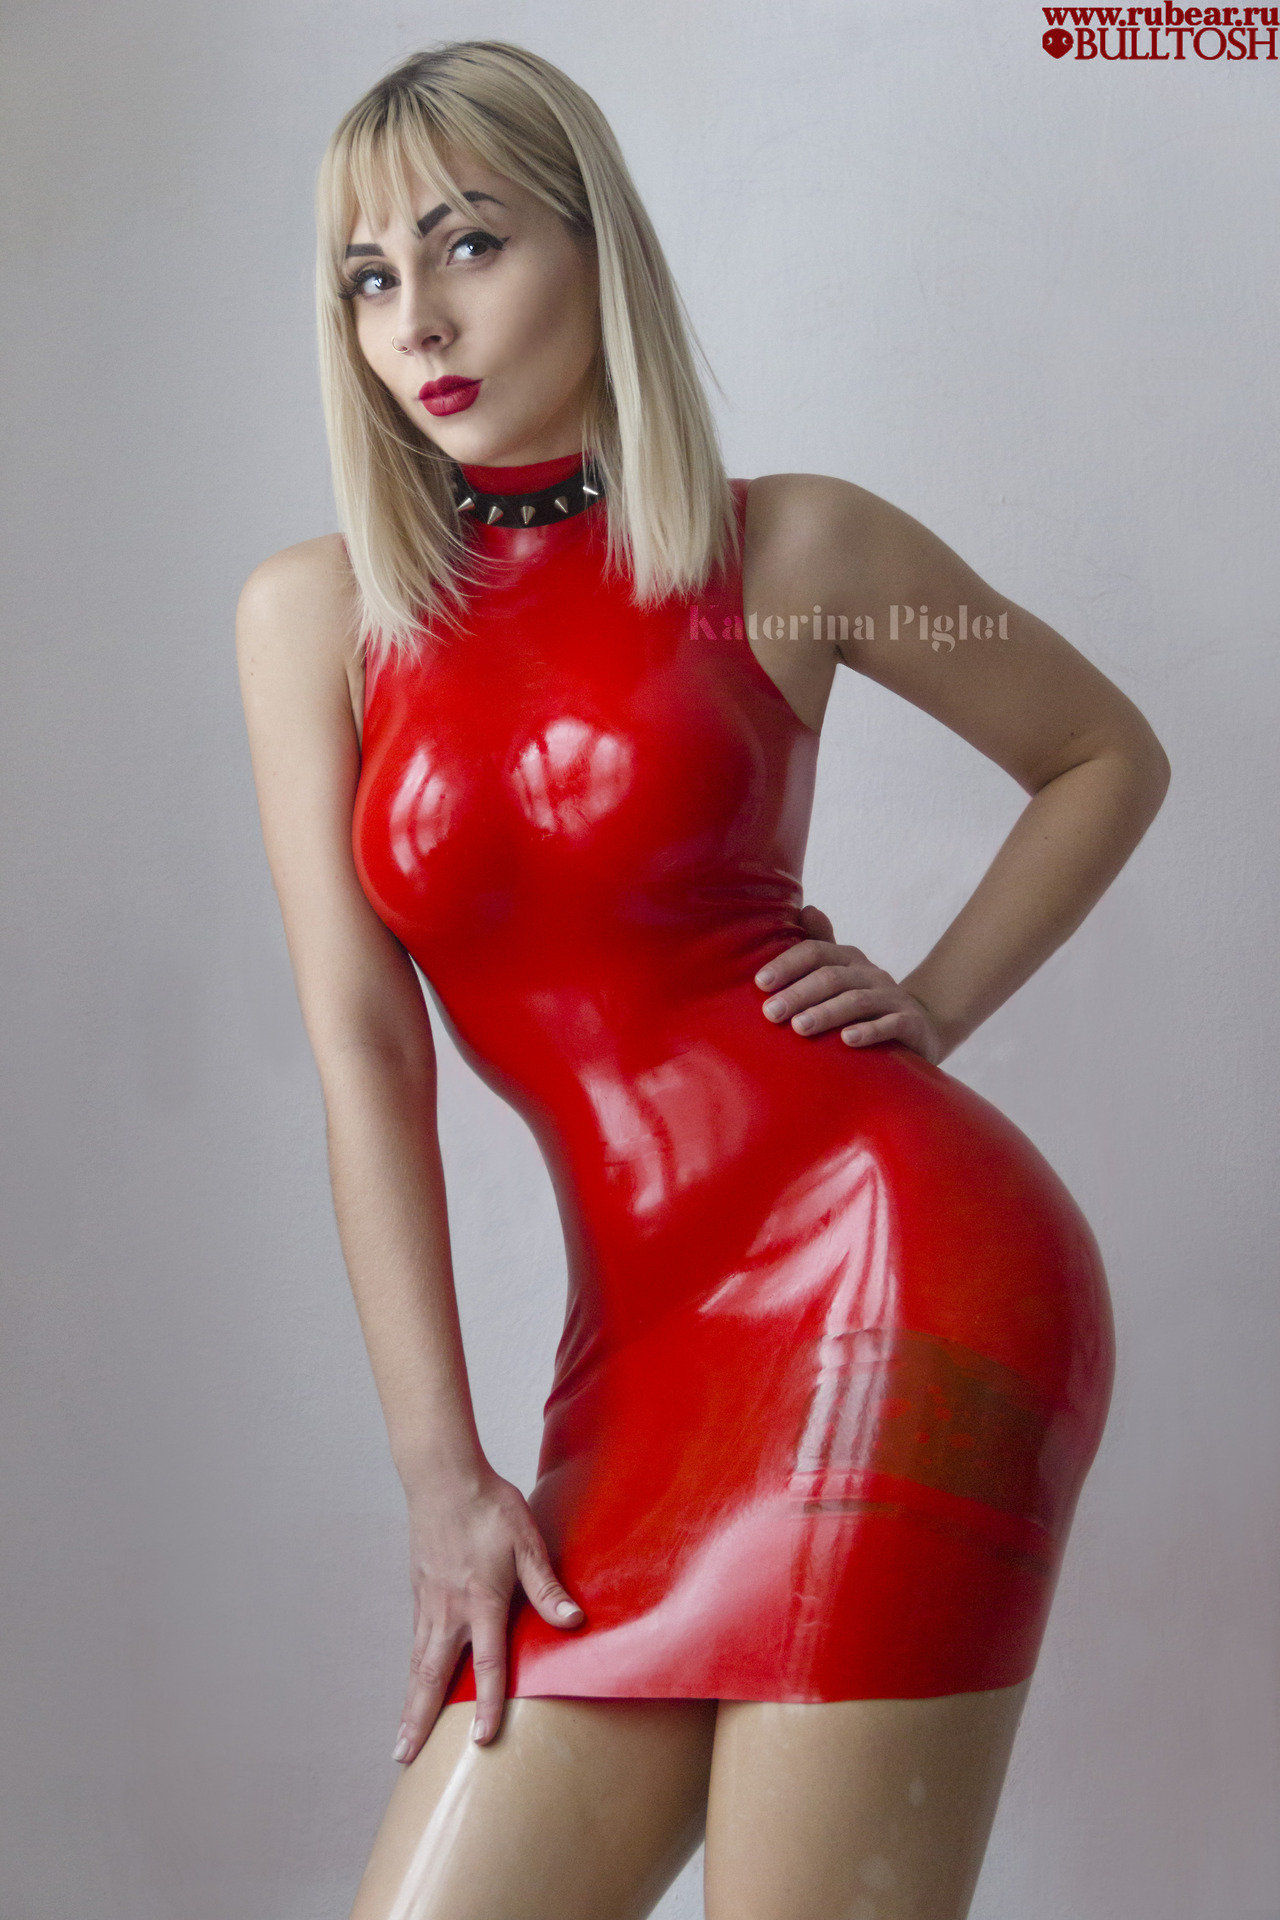 "98168d863cb1 k-piglet-latex: "" Collar and latex stockings by KINKSIDE Red latex Dress by  RUBEAR Follow Me: FACEBOOK INSTAGRAM YOUTUBE DEVIANTART Photo by bulltosh """